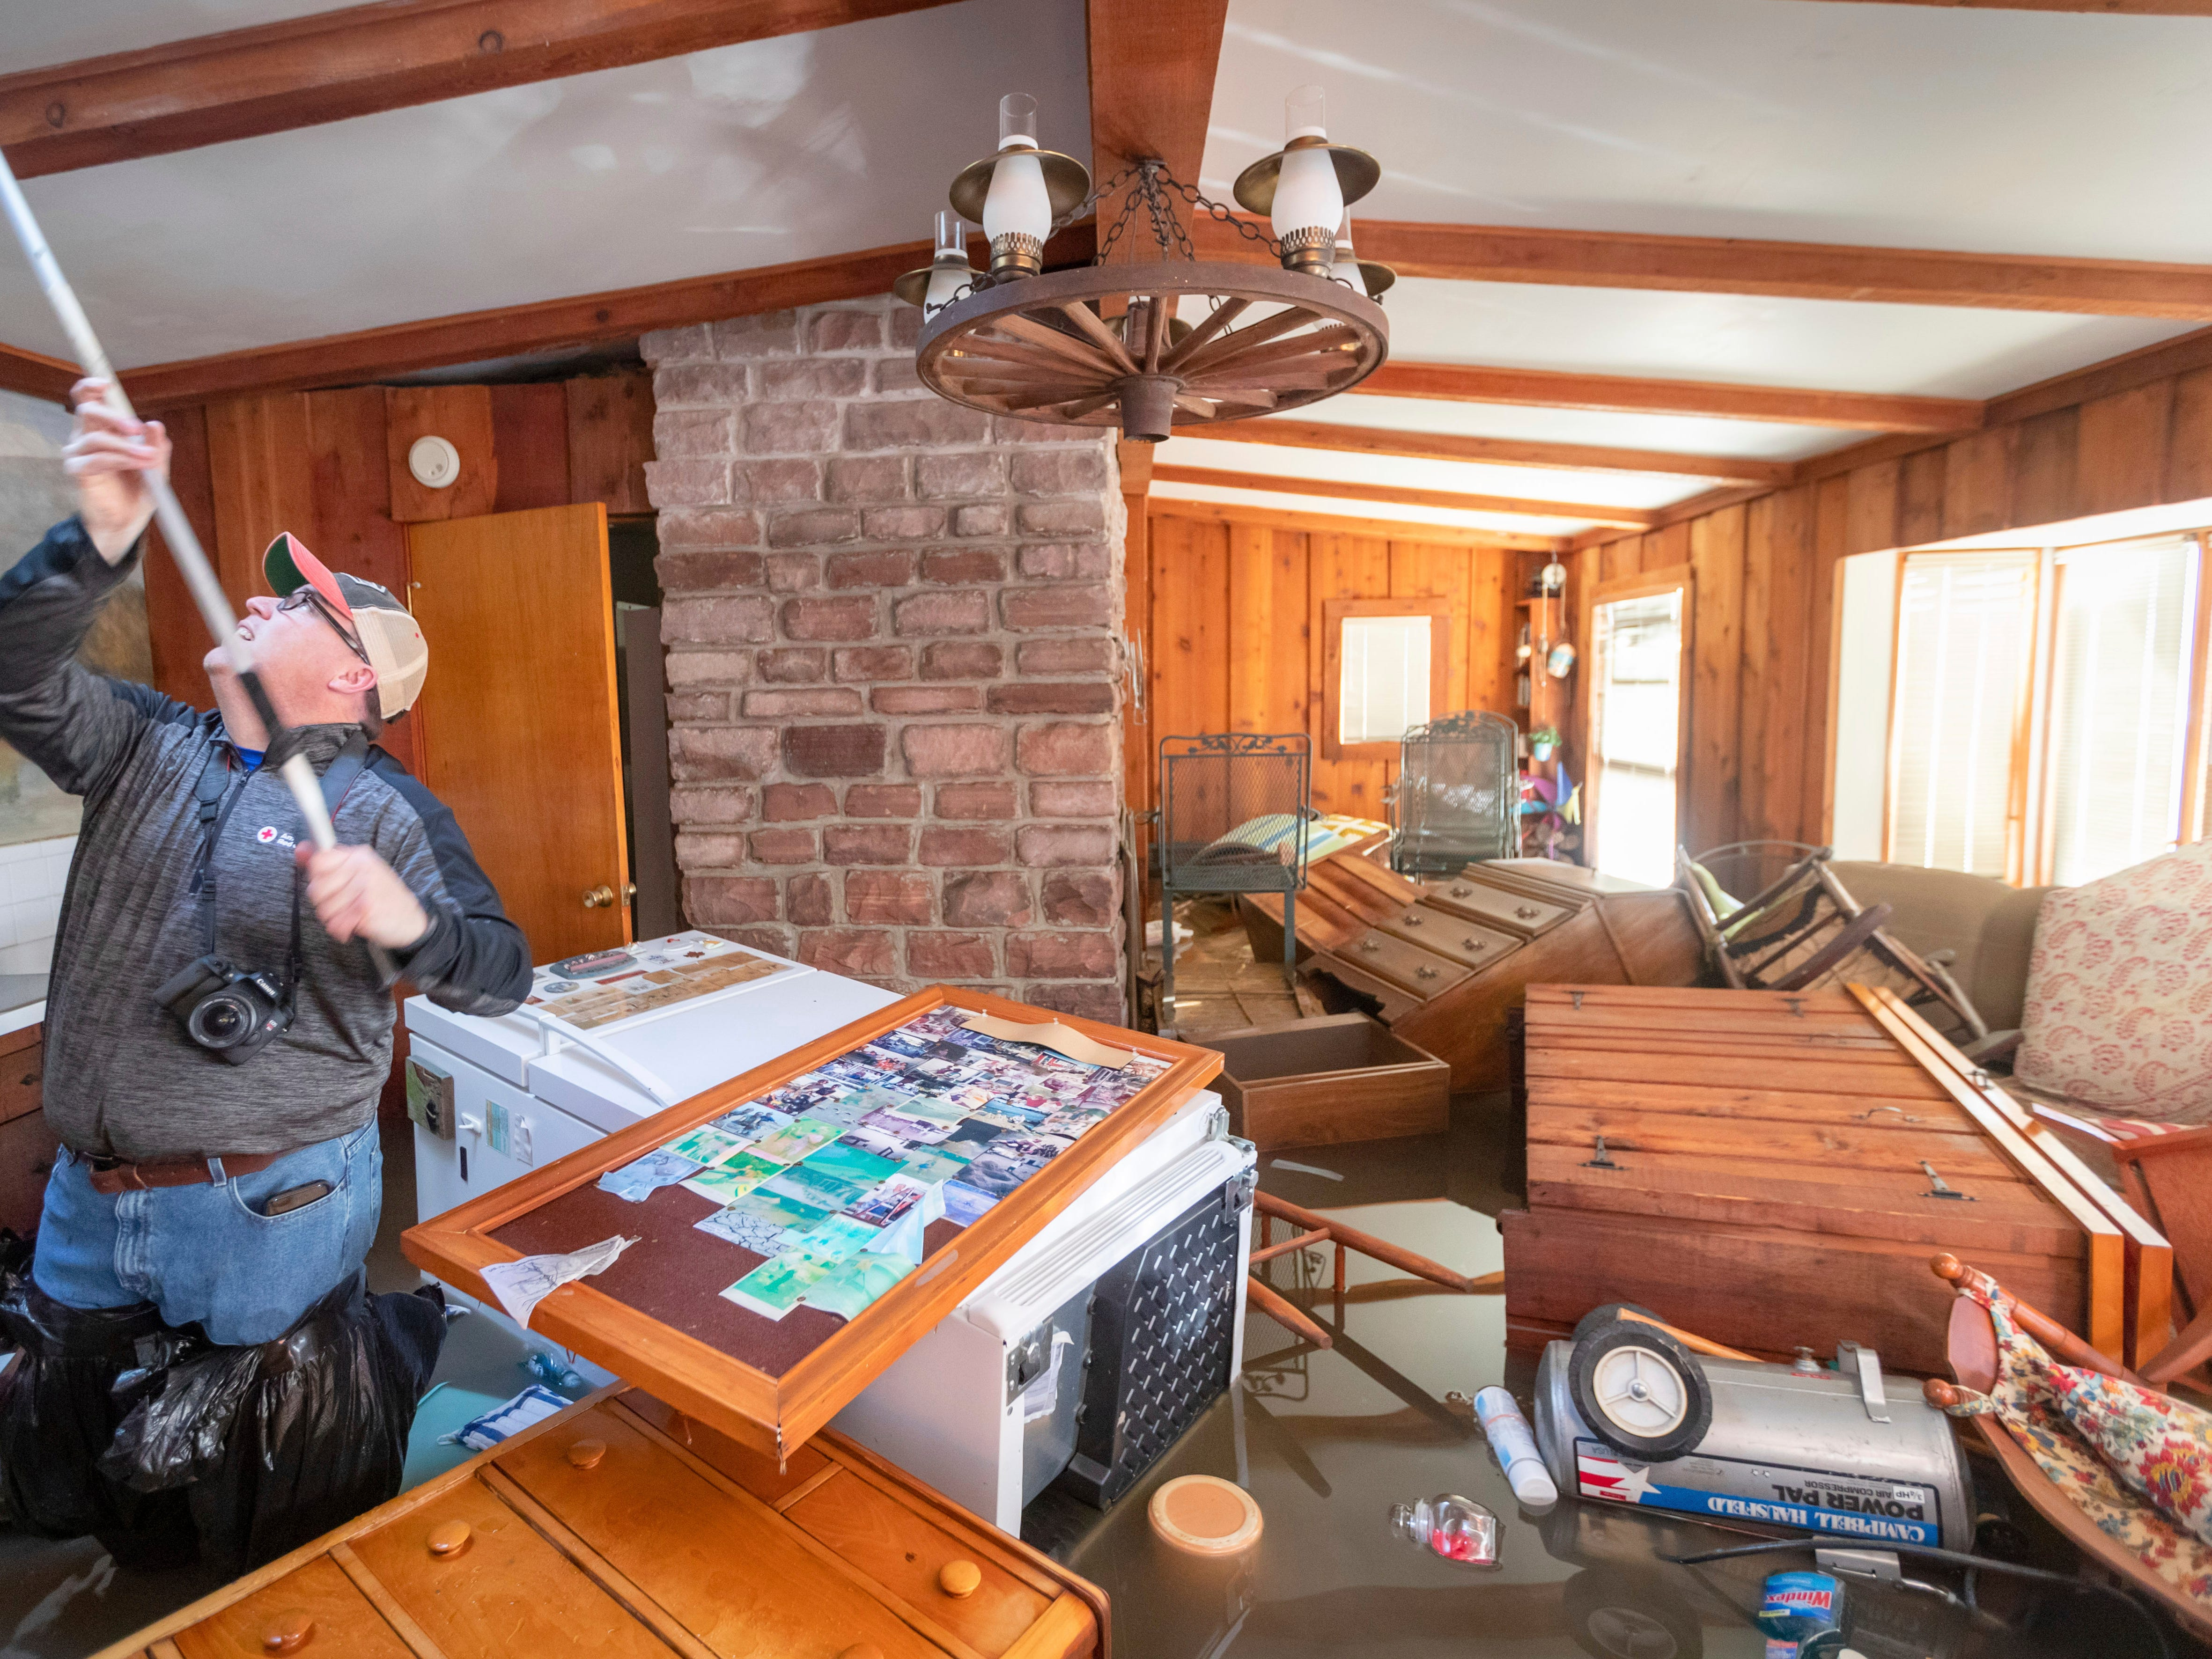 Steve O'Donnell works to open a skylight while standing in floodwaters inside a home Friday, March 22, 2019, in Bellevue, Neb.